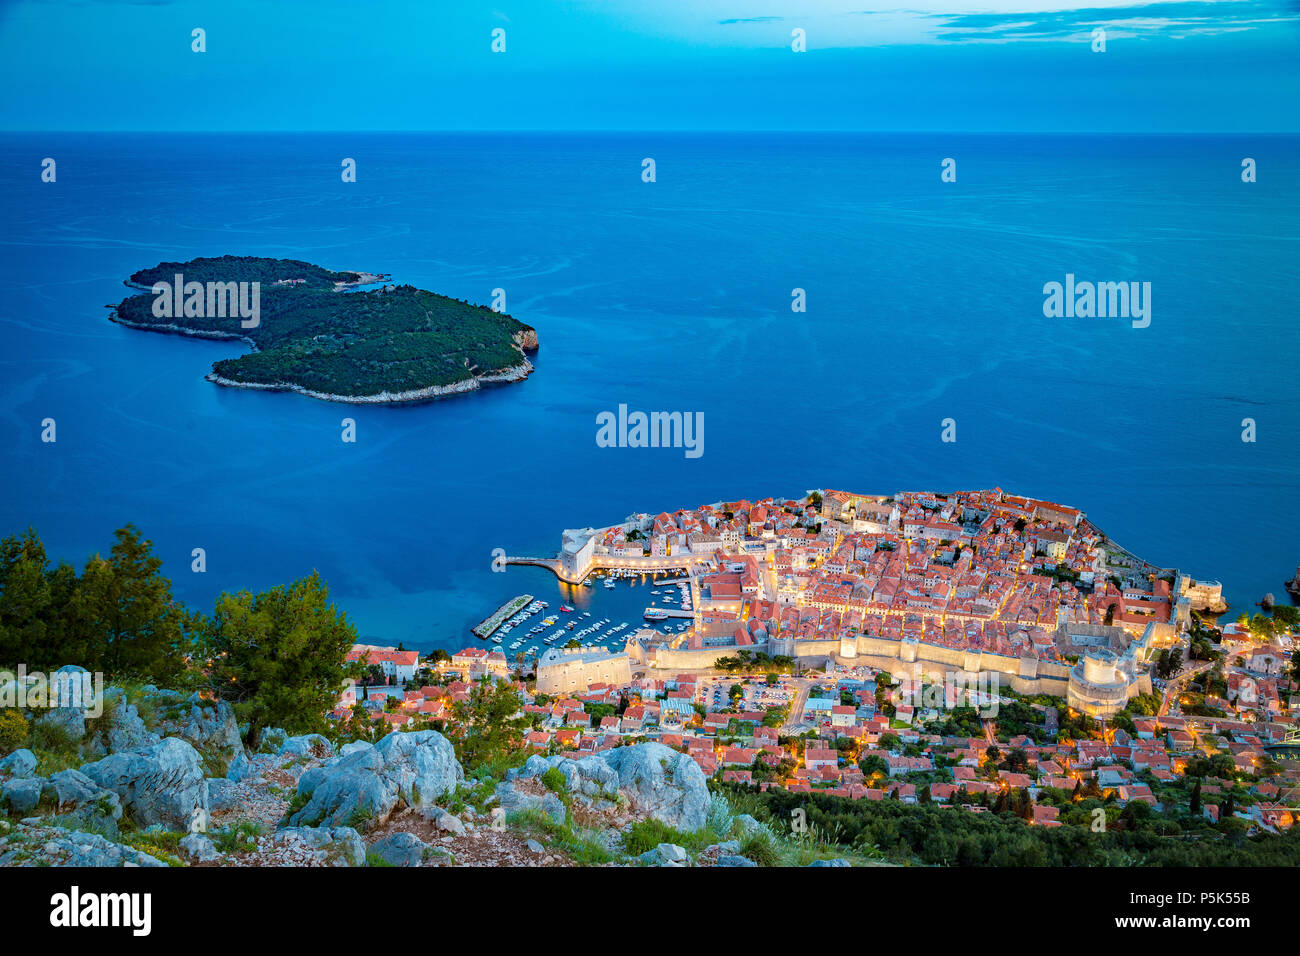 Panoramic aerial view of the historic town of Dubrovnik with Lokrum island in beautiful evening twilight at dusk, Dalmatia, Croatia Stock Photo